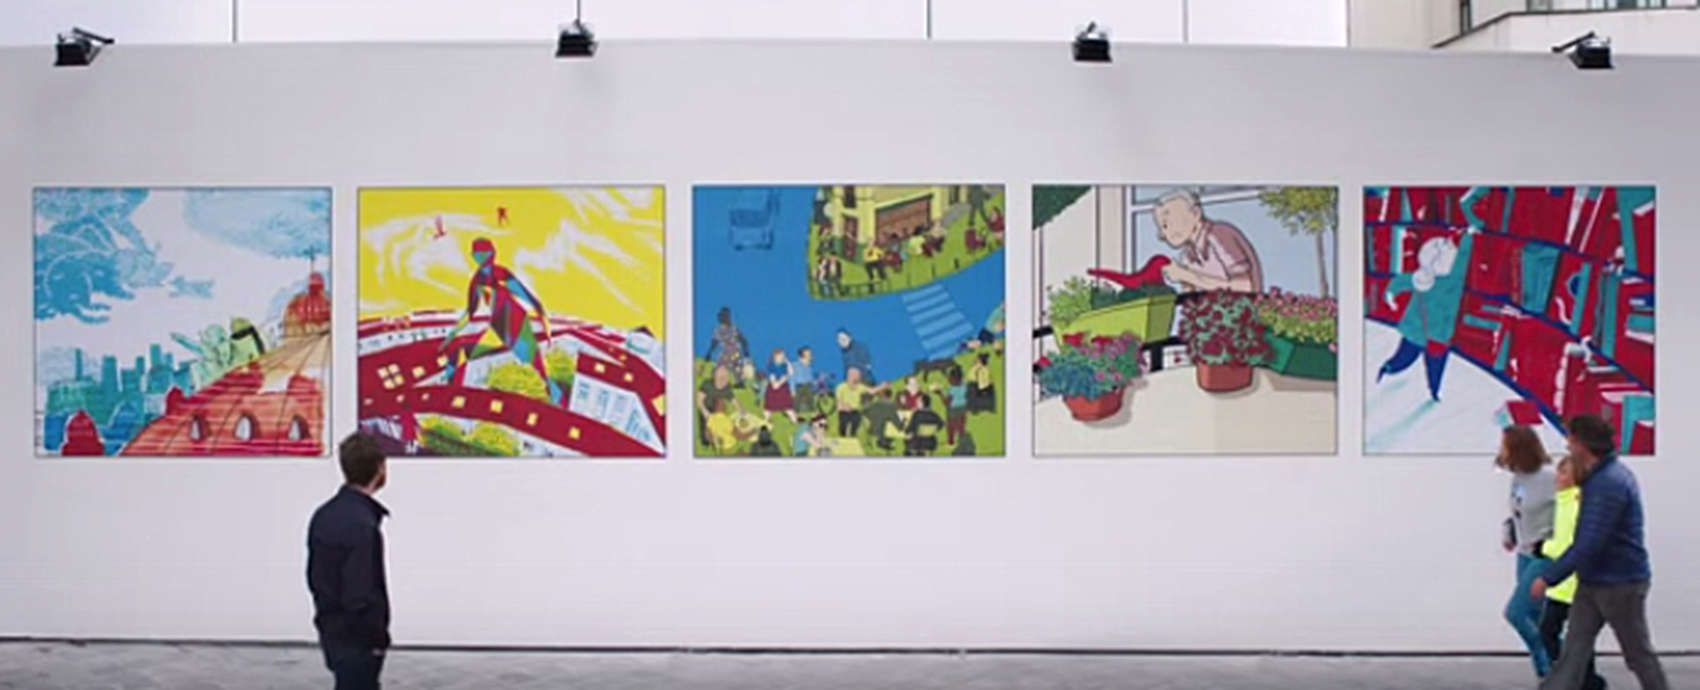 Apple asked Belgian's comic art community to help announce a new store in Brussels.